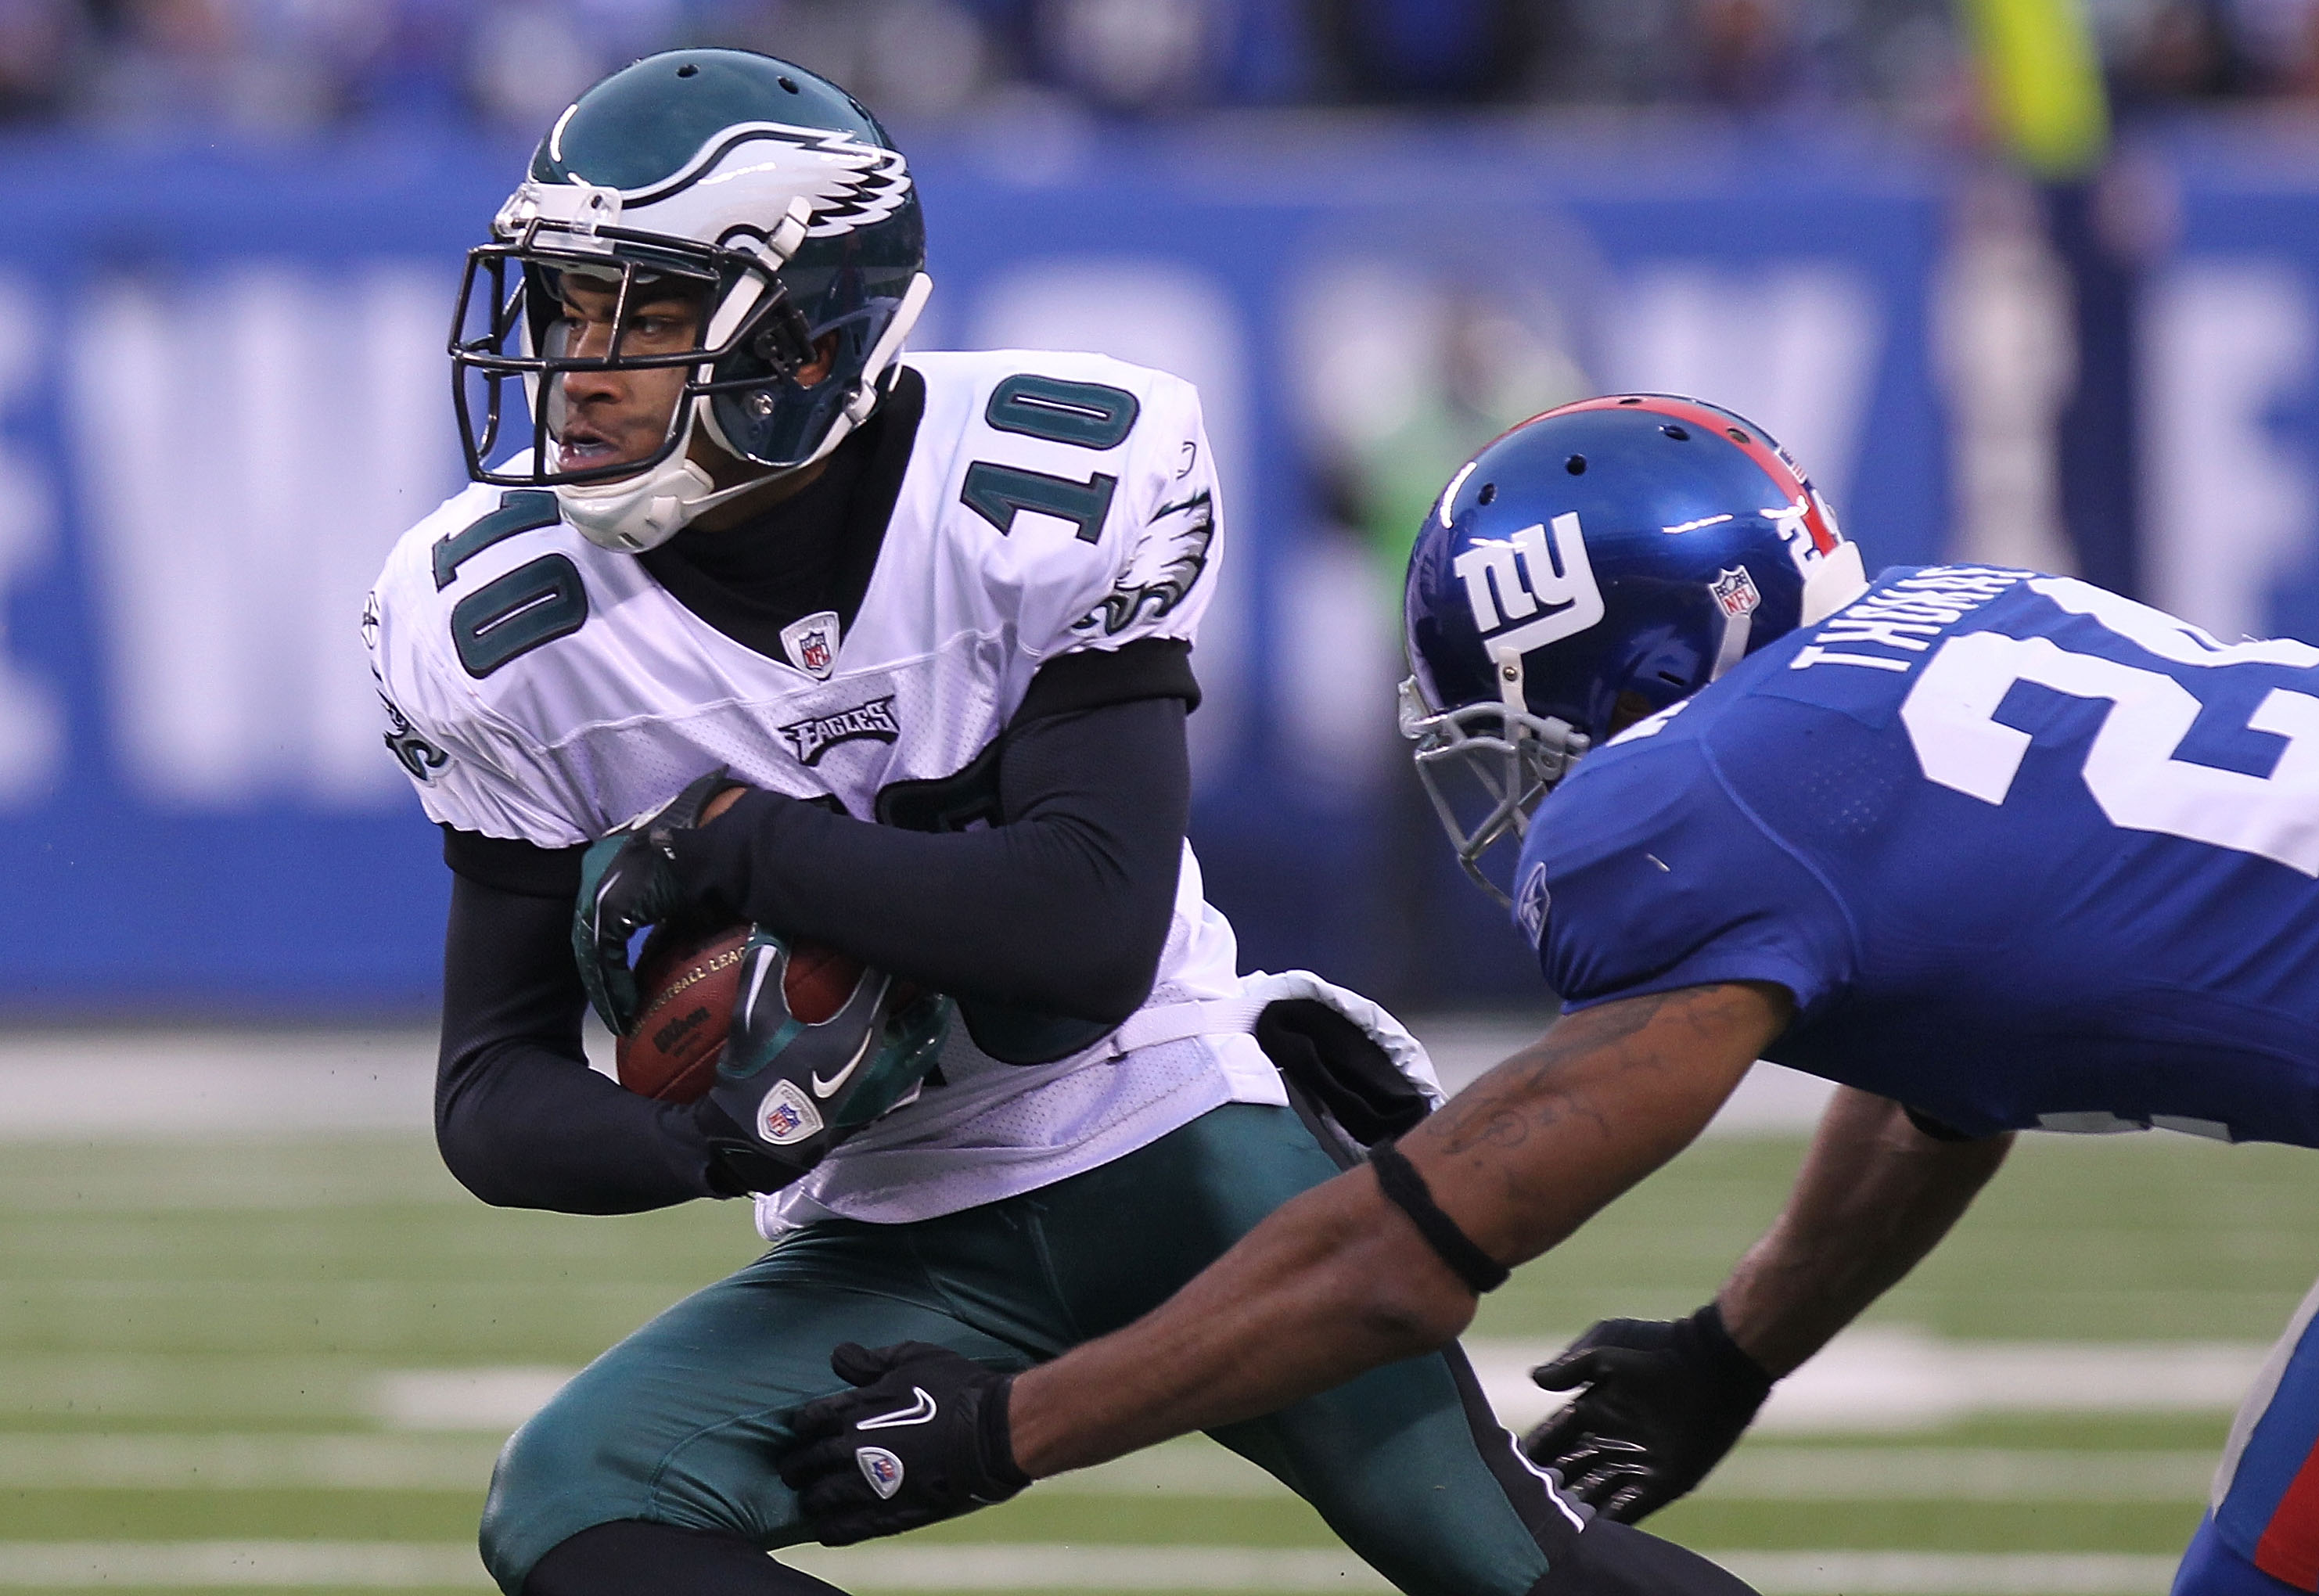 EAST RUTHERFORD, NJ - DECEMBER 19:  DeSean Jackson #10 of the Philadelphia Eagles eludes the tackle of Terrell Thomas #24 of the New York Giants at New Meadowlands Stadium on December 19, 2010 in East Rutherford, New Jersey.  (Photo by Nick Laham/Getty Im